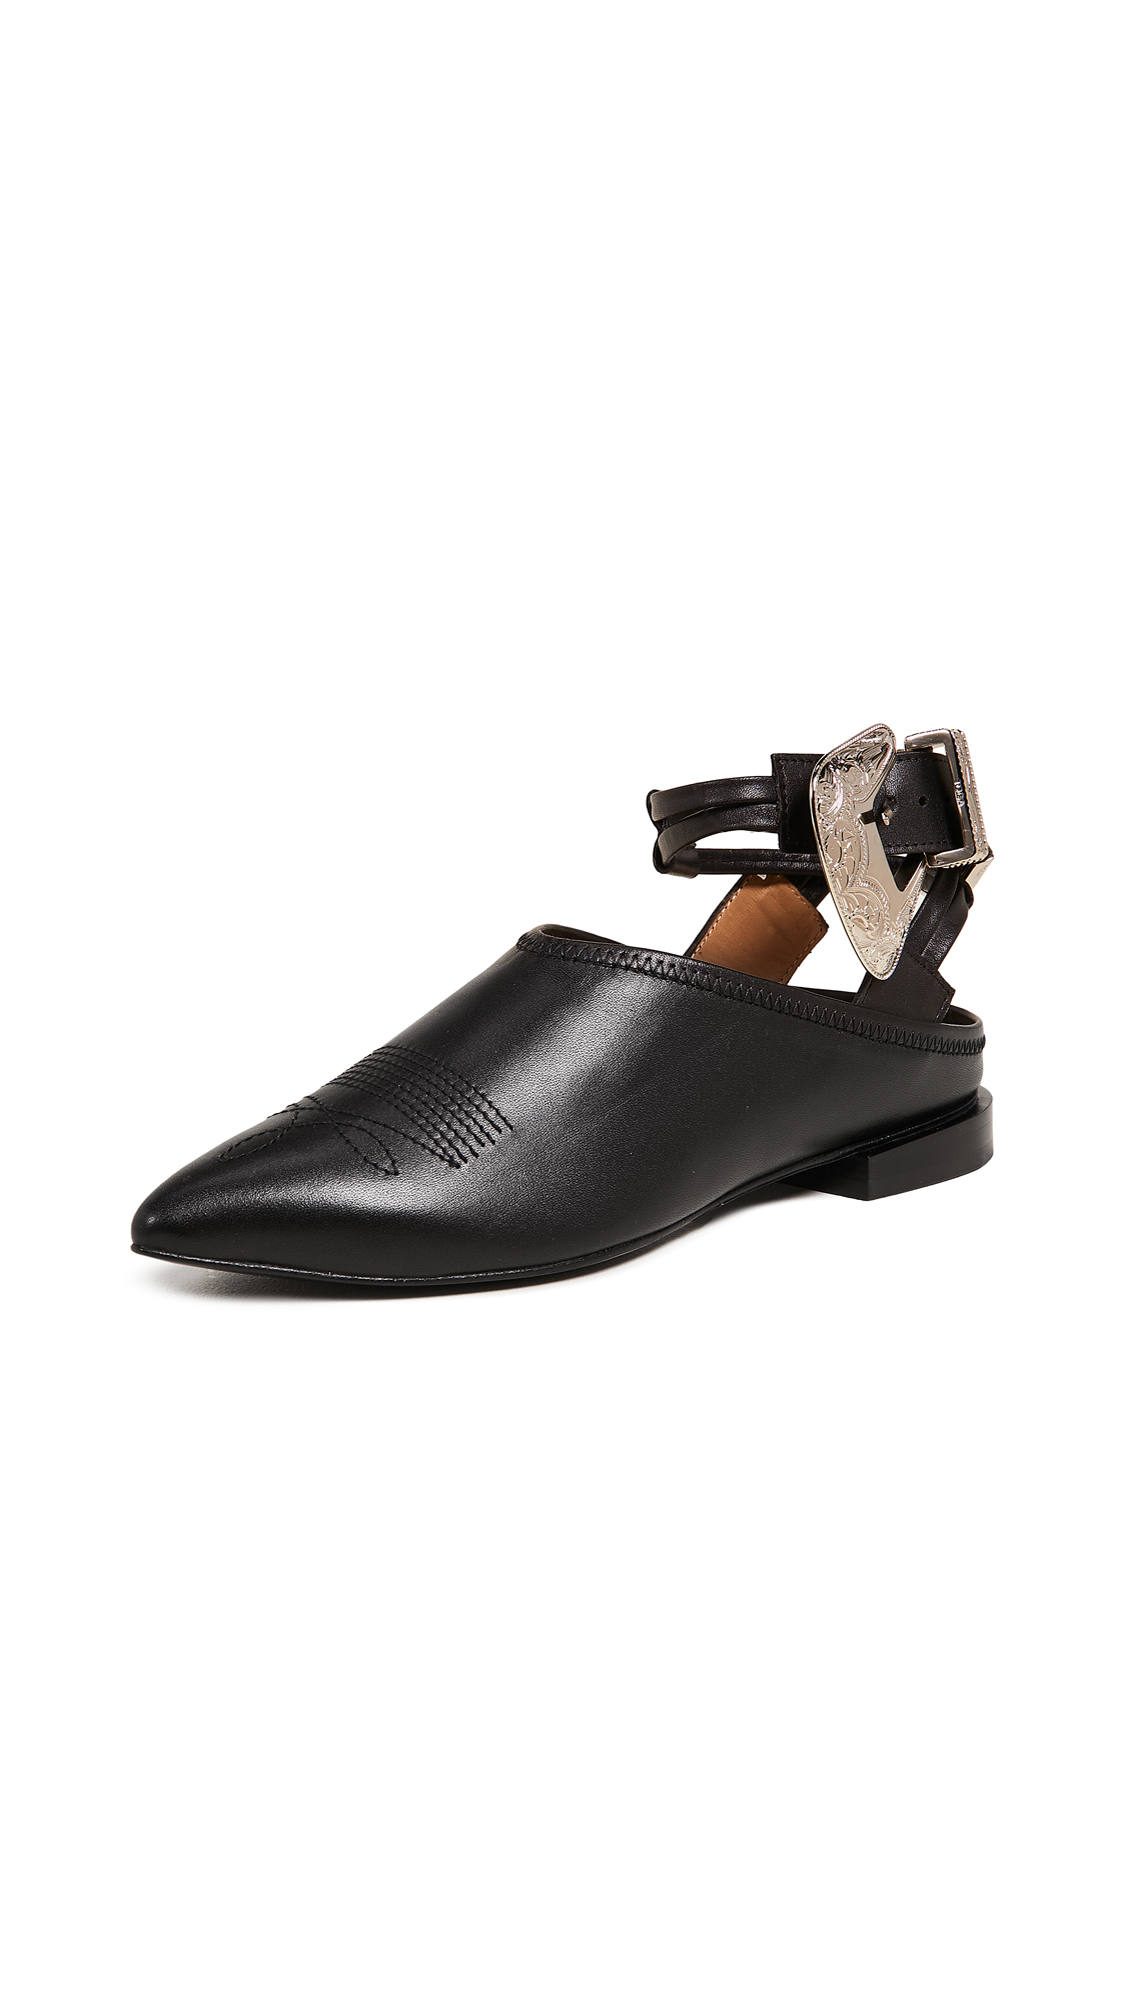 Toga Pulla Buckle Ankle Strap Mules - Black